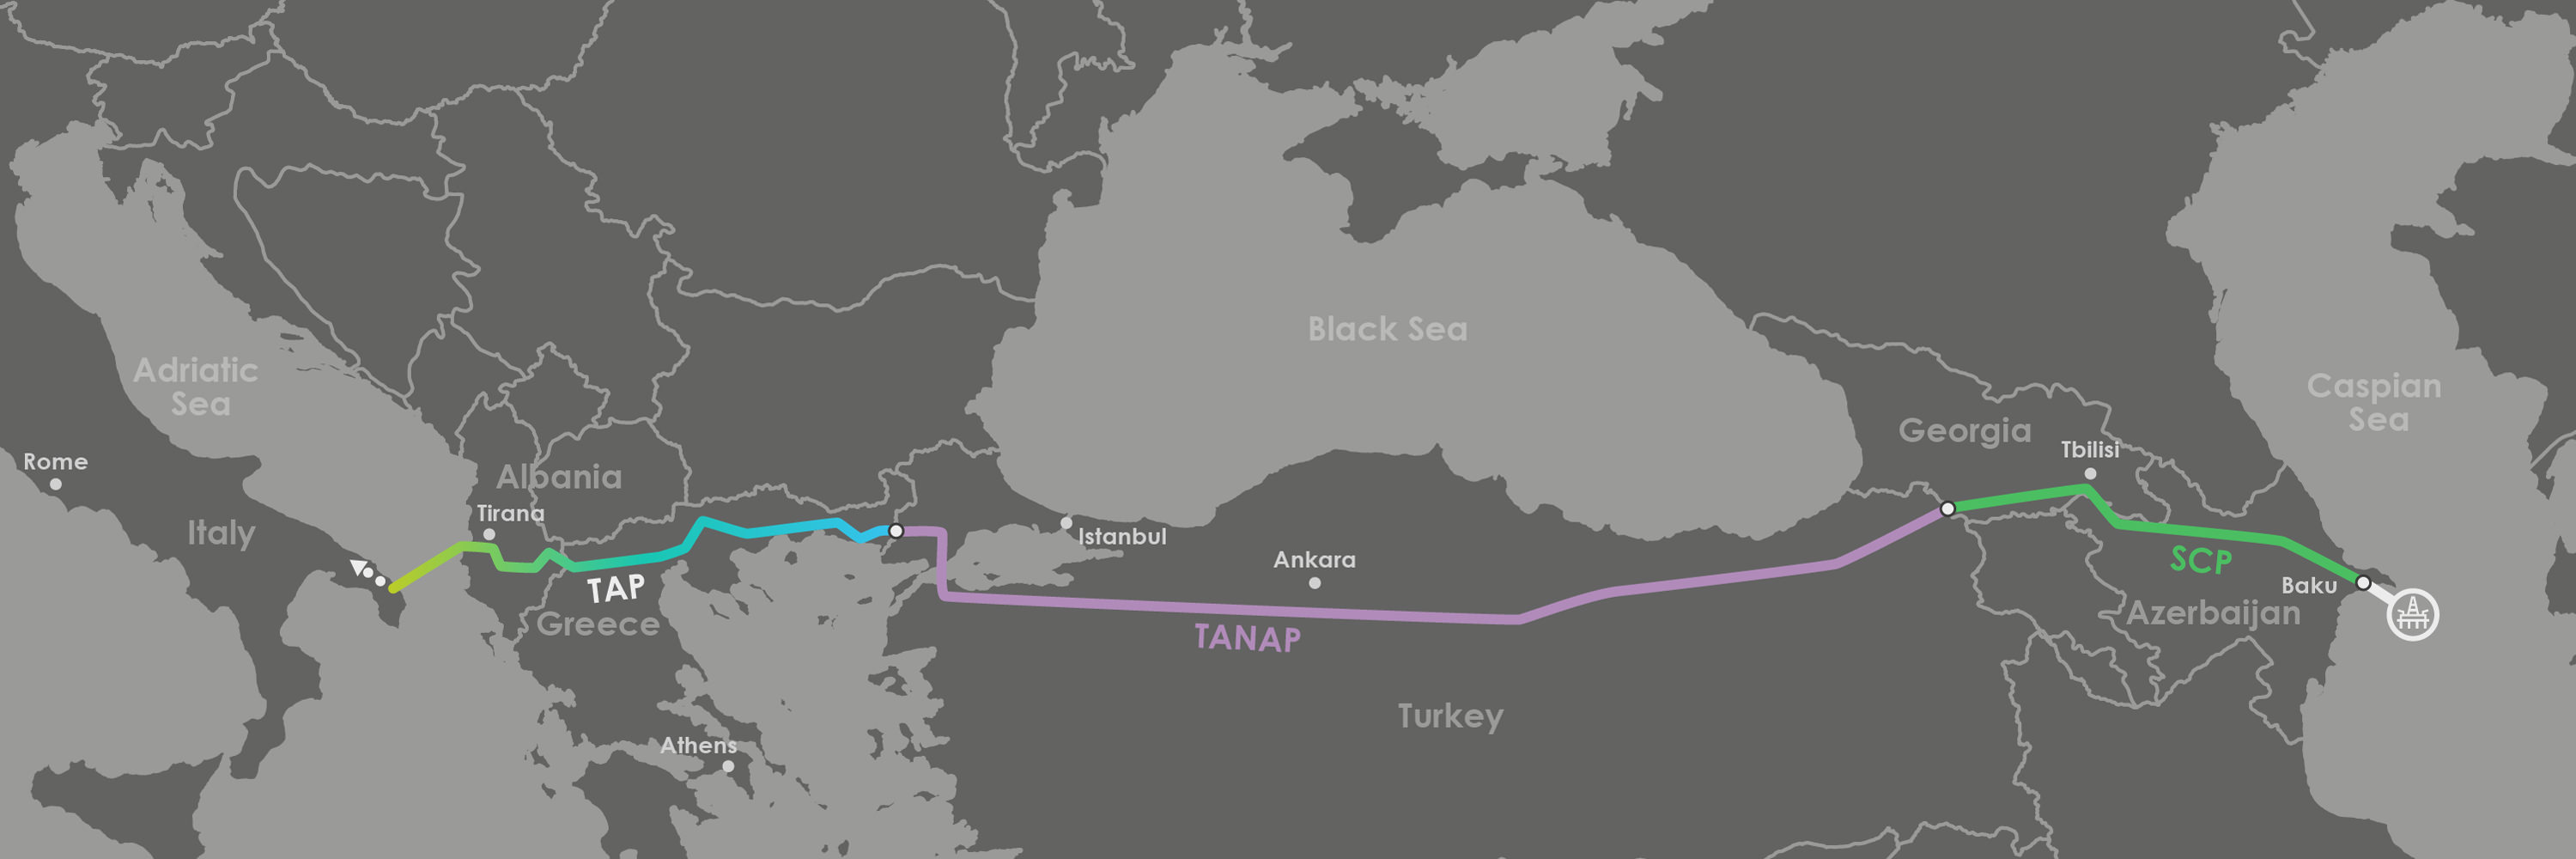 court-stops-removal-of-trees-for-puglia-pipeline